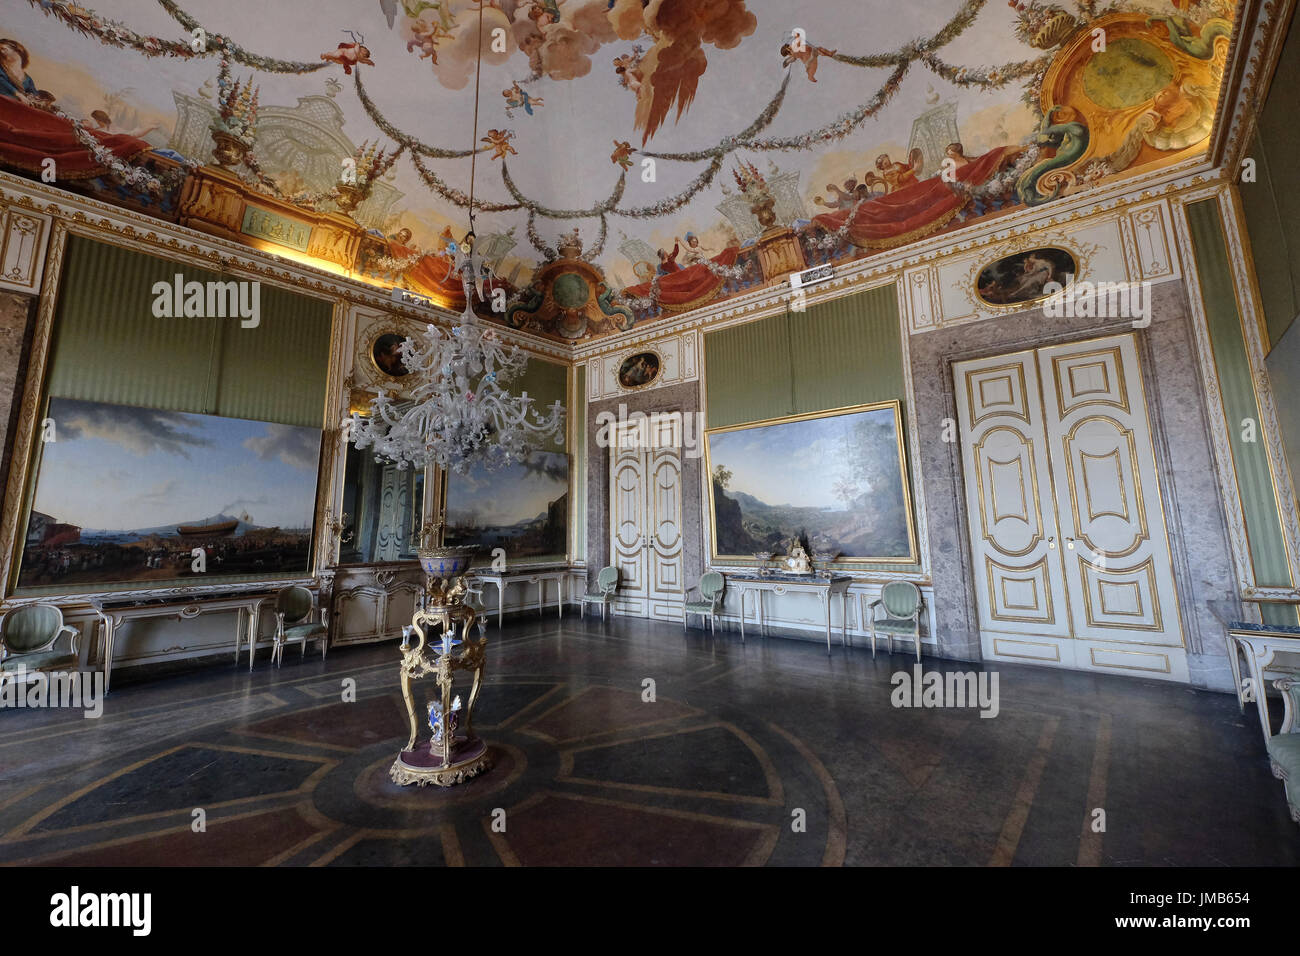 The room of Spring, Royal Palace of Caserta, Campania, Italy Stock Photo